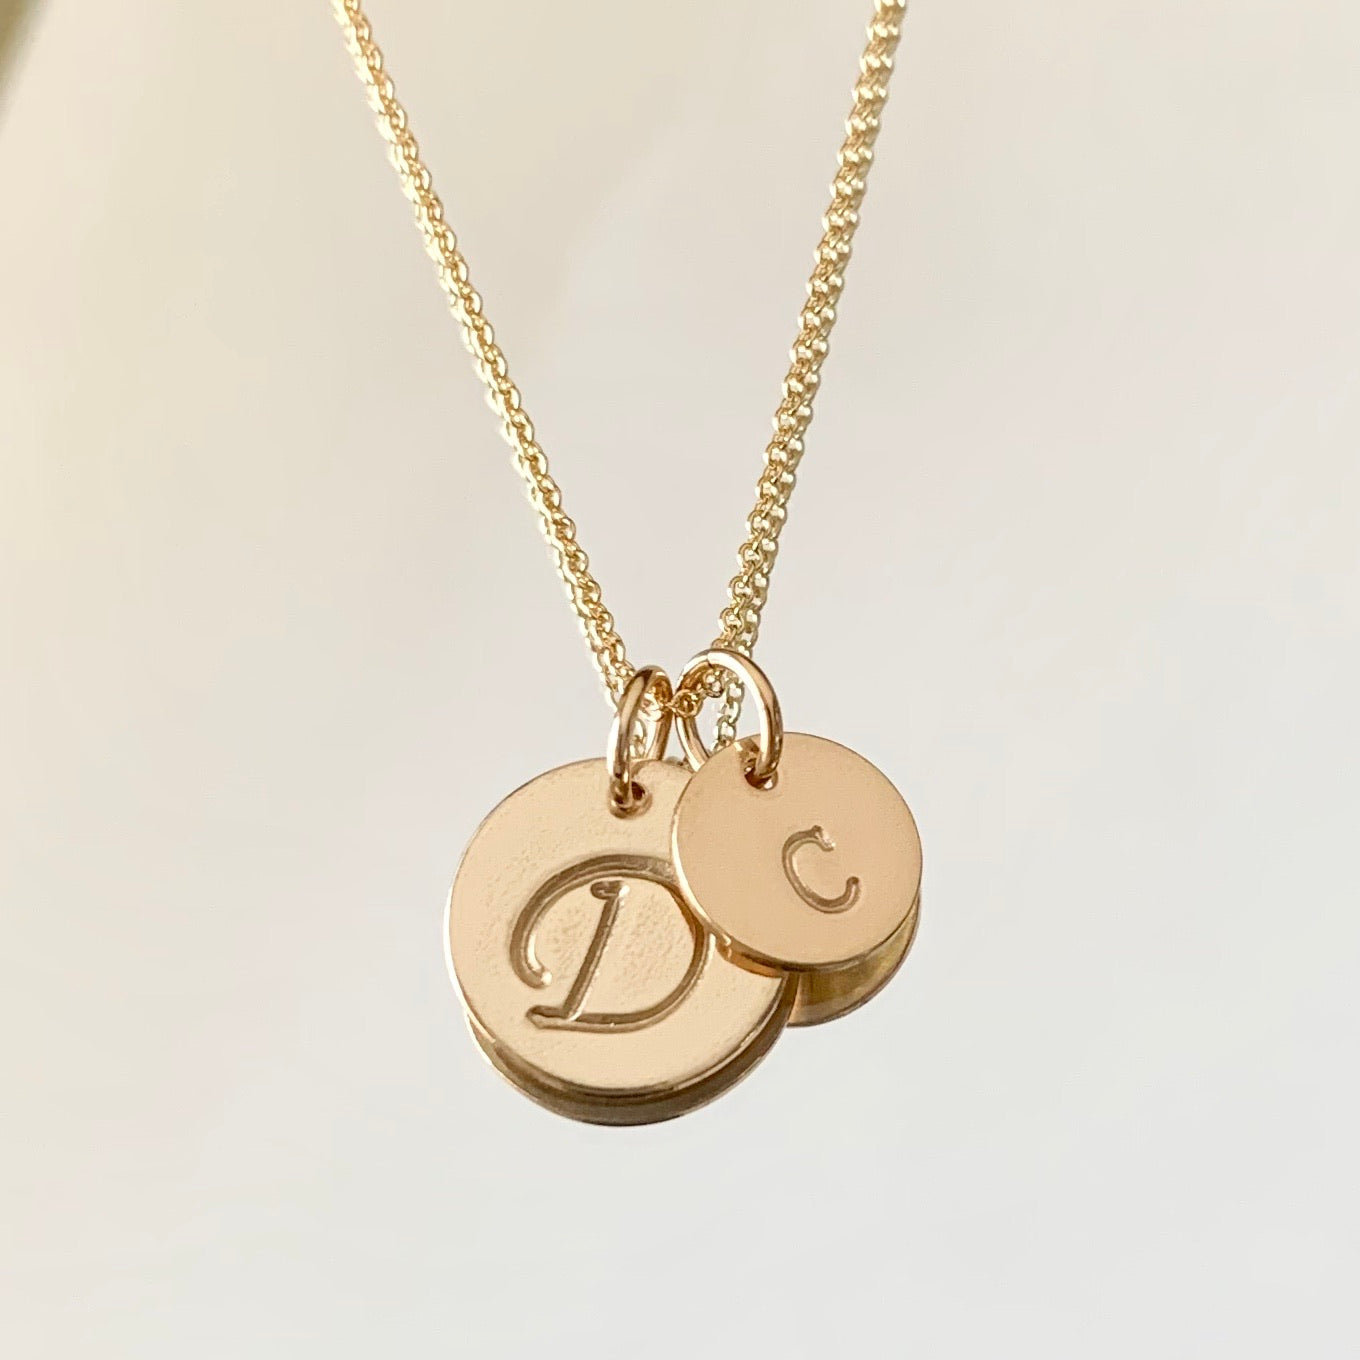 Big initial little initial necklace